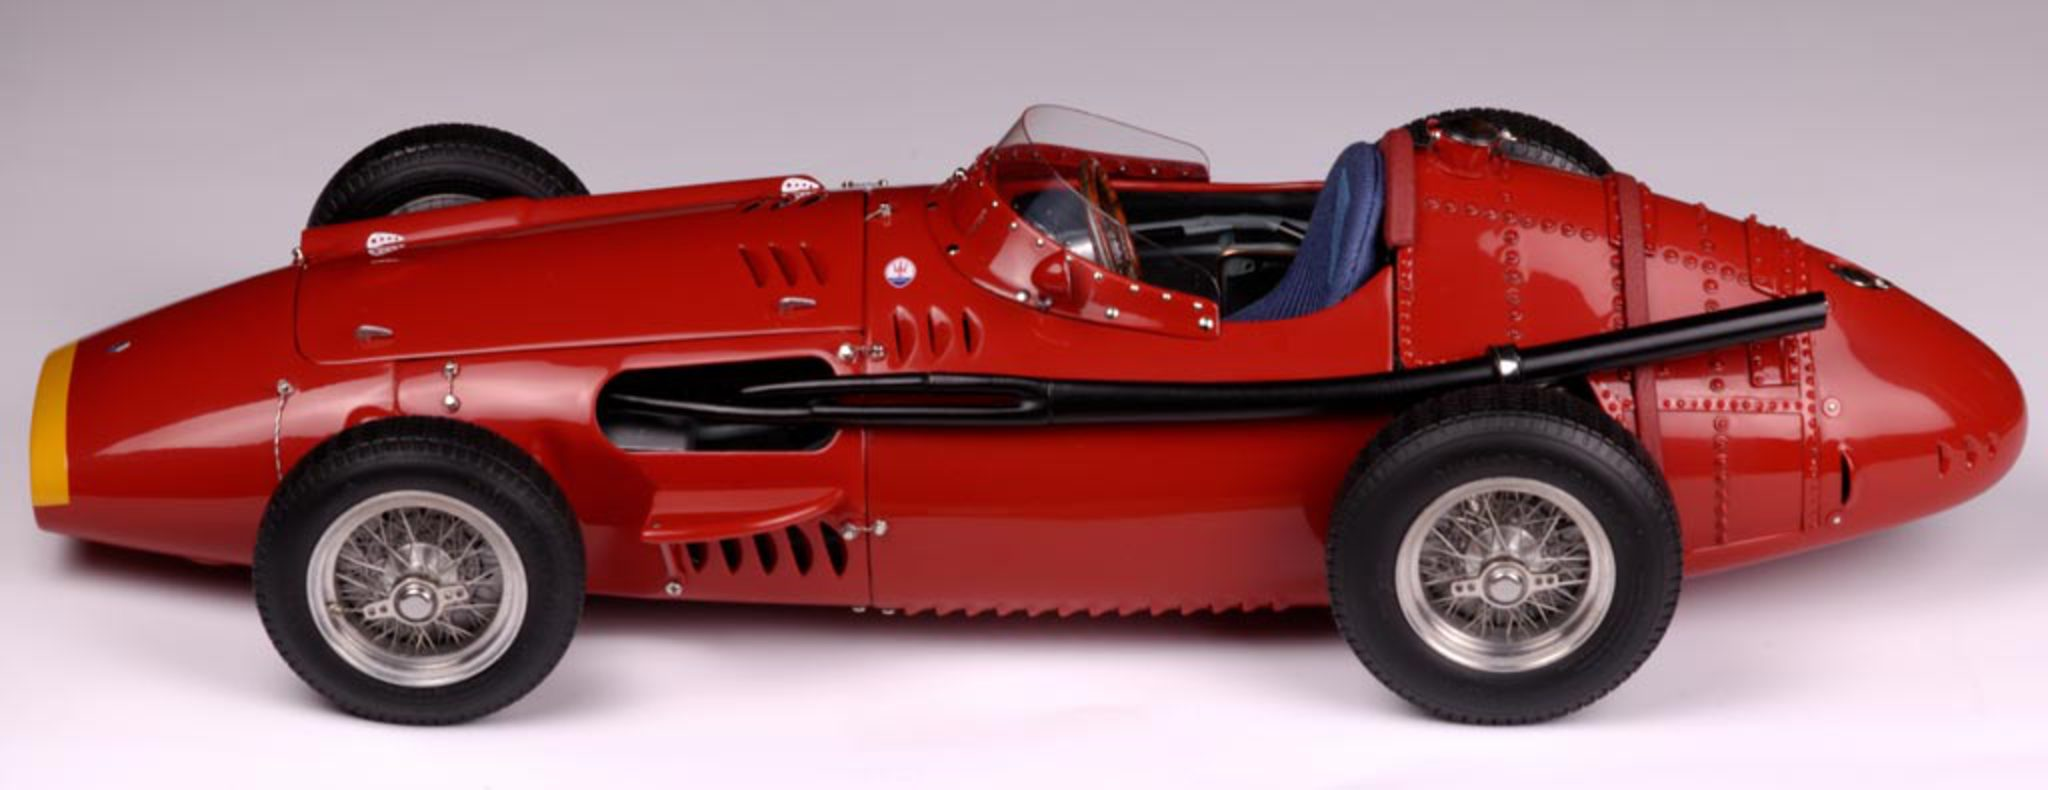 File:CMC Maserati 250 F.jpg. Size of this preview: 800 × 309 pixels.